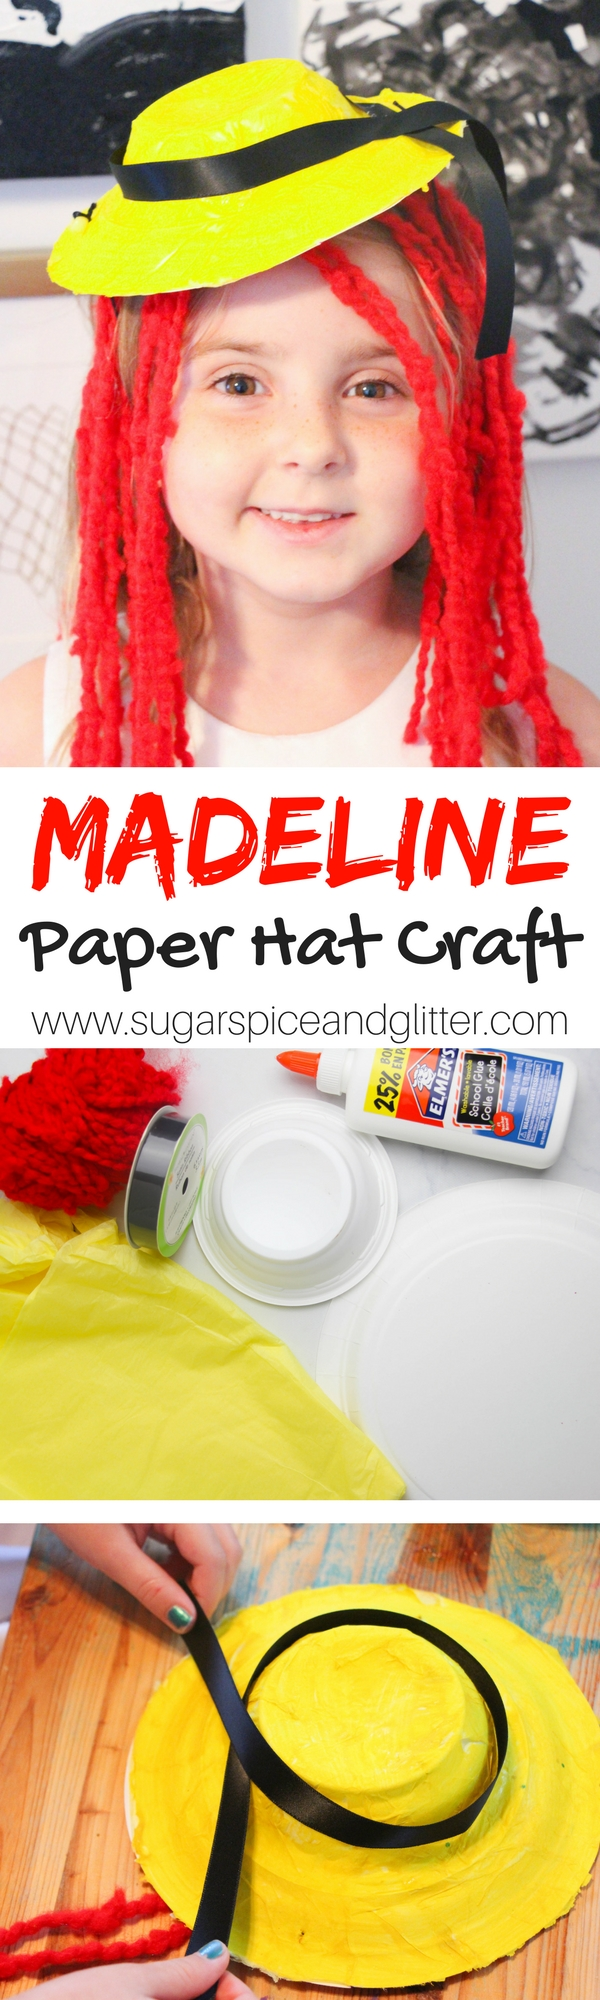 M is for Madeline Craft - a cute kids craft inspired by the classic children's book. The perfect way to use up leftover paper plates or yarn